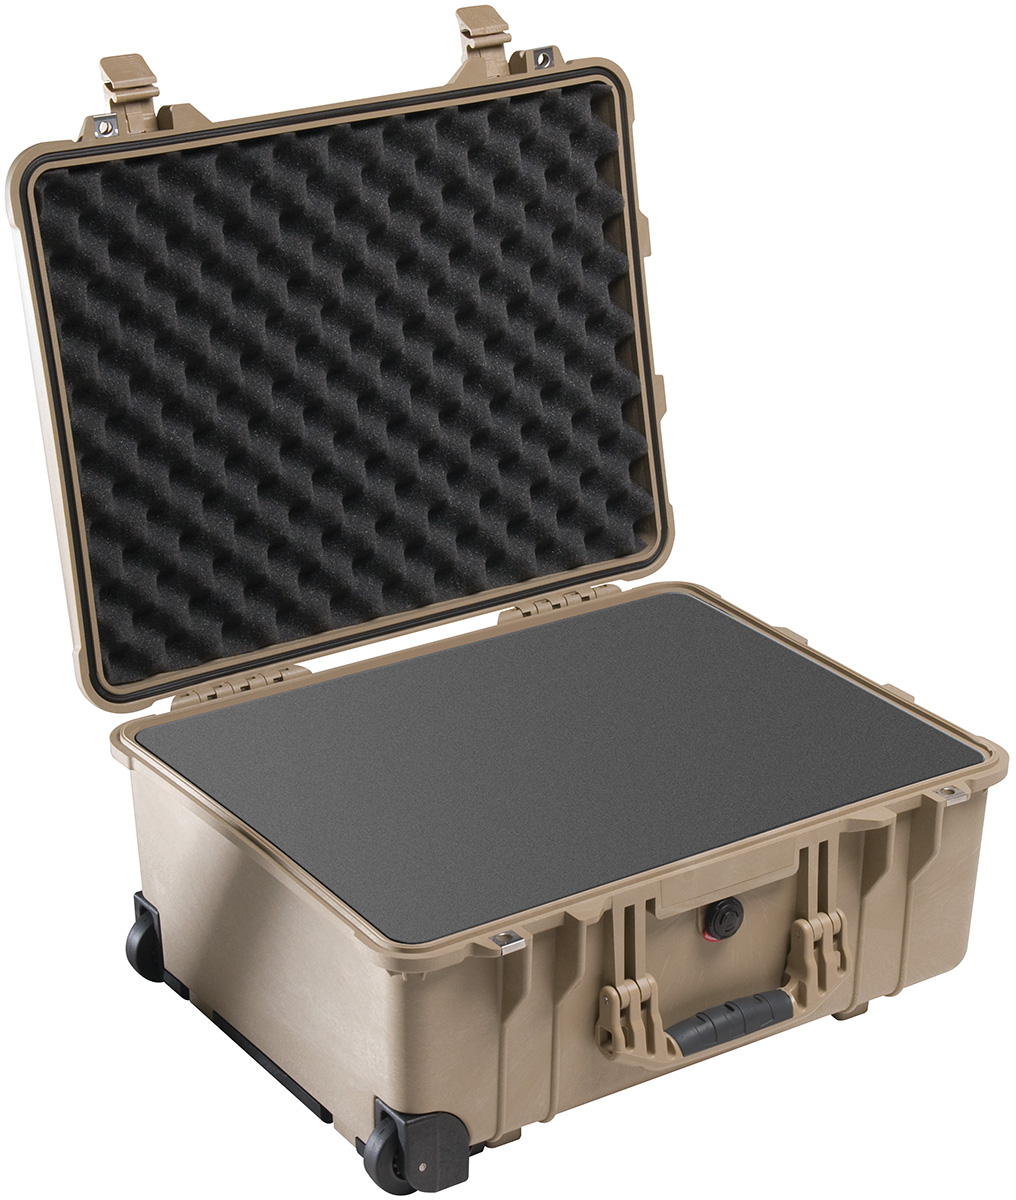 pelican peli products 1560 usa made hardcase rolling case